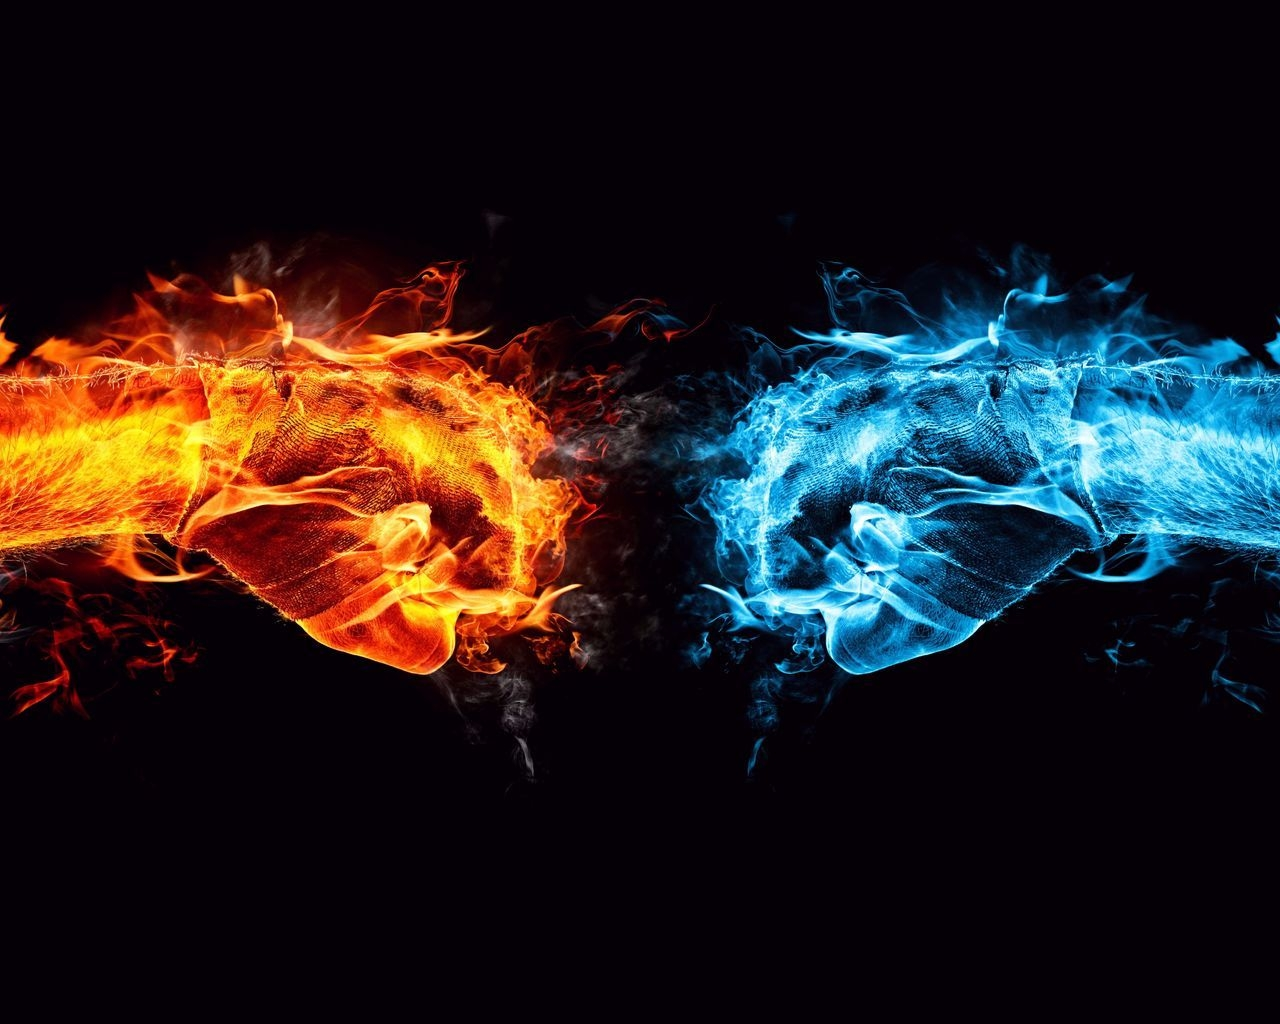 Fire and Ice Conflict for 1280 x 1024 resolution